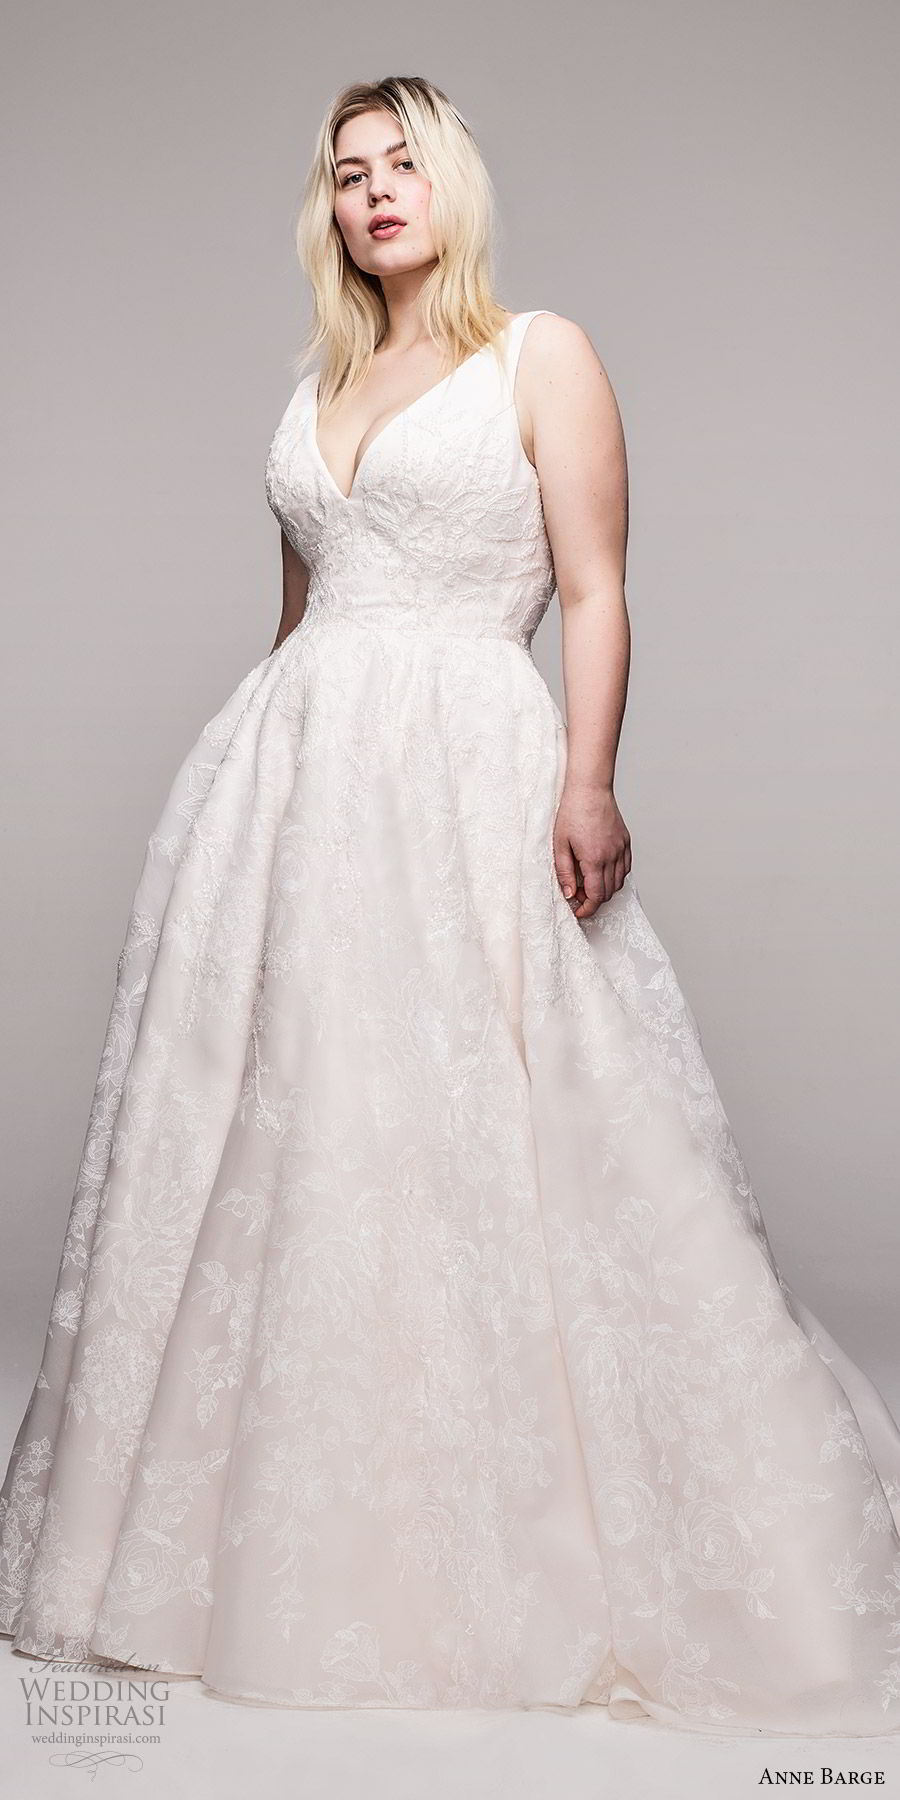 anne barge 2020 bridal plus size sleeveless thick straps v neckline fully embellished a line ball gown wedding dress (5) romantic elegant chapel train mv